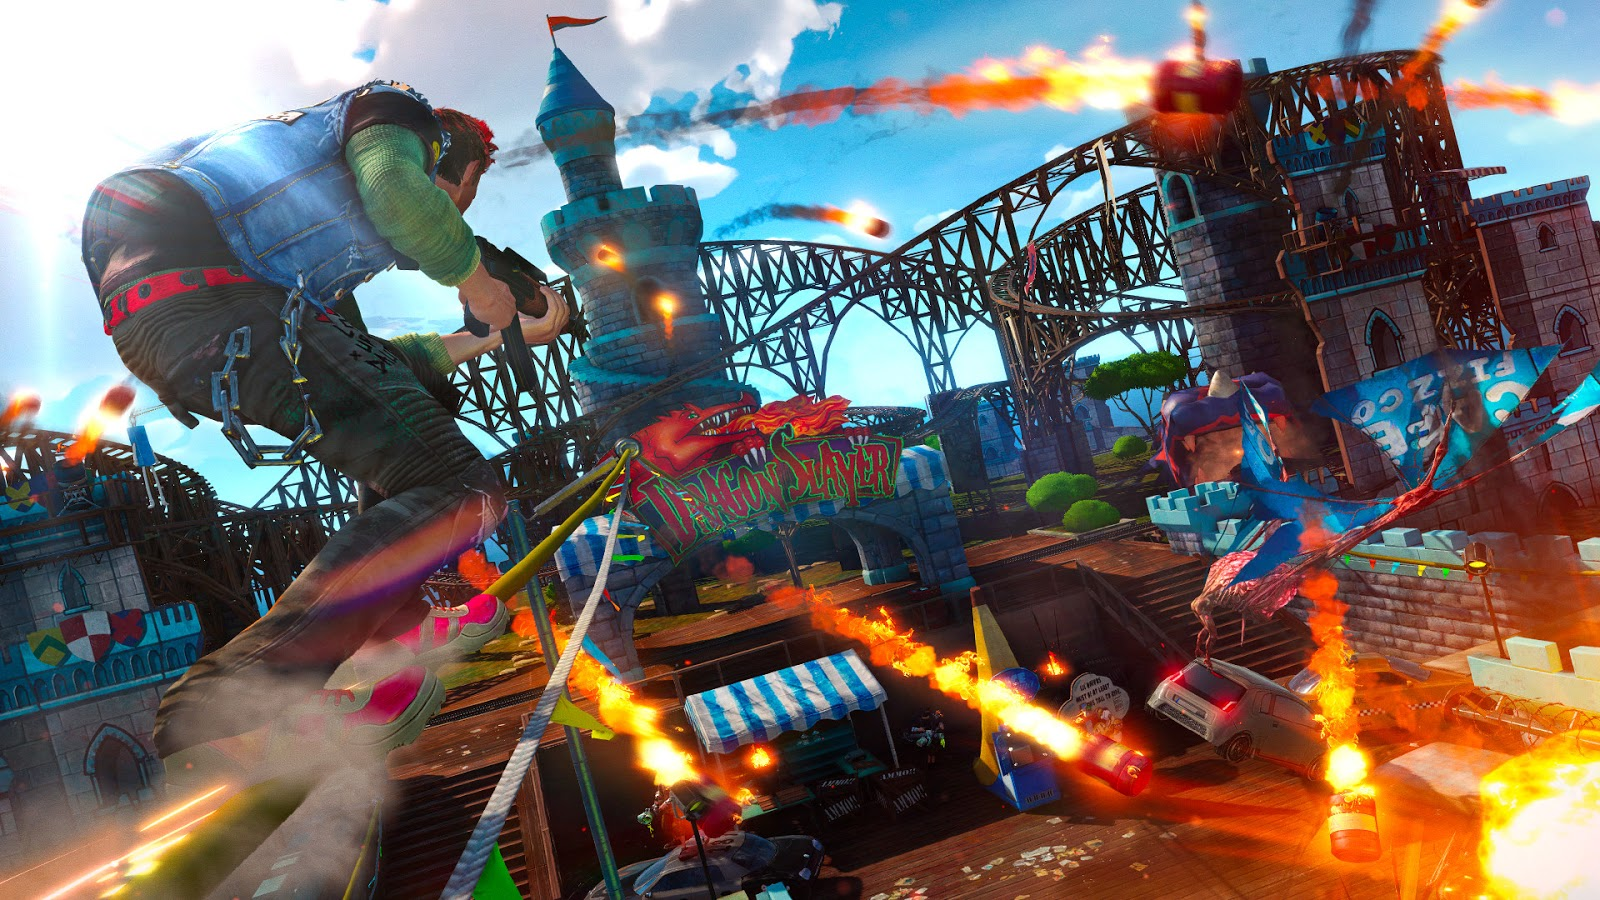 A screenshot of the player character in sunset overdrive, grinding along a rope whilst explosives fly through the air around them